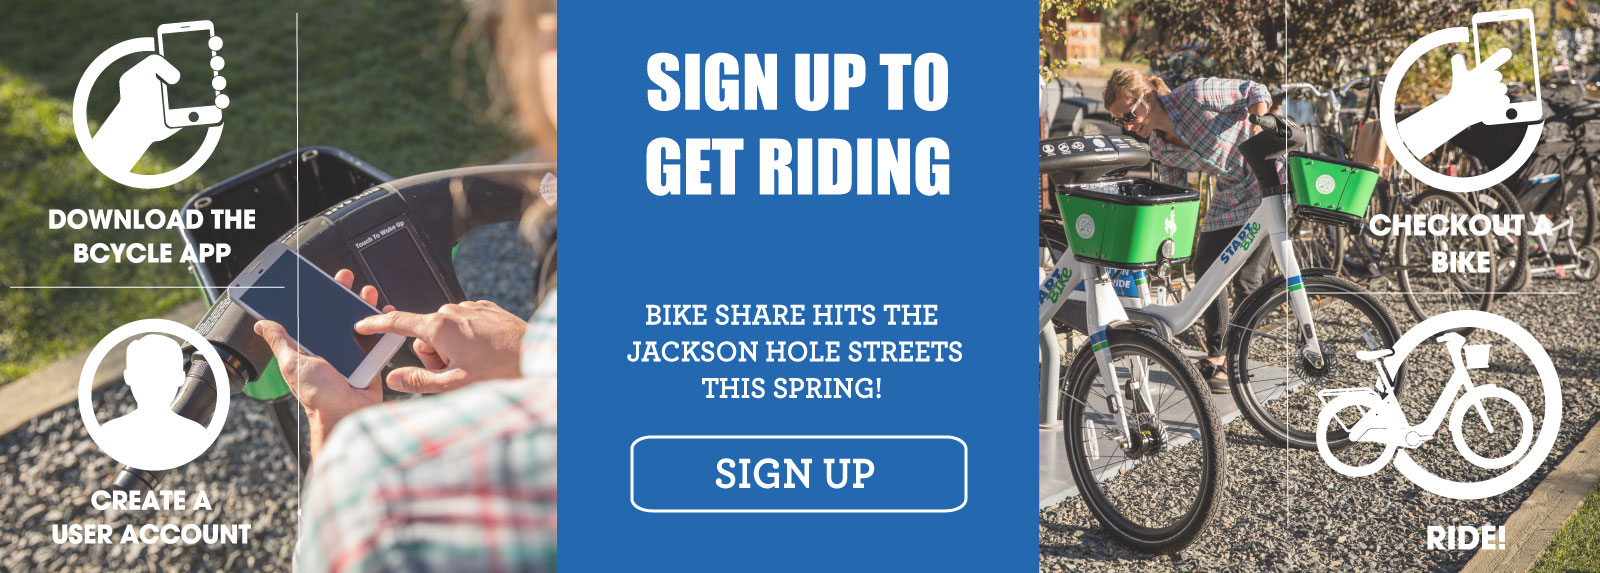 Sign Up to Ride